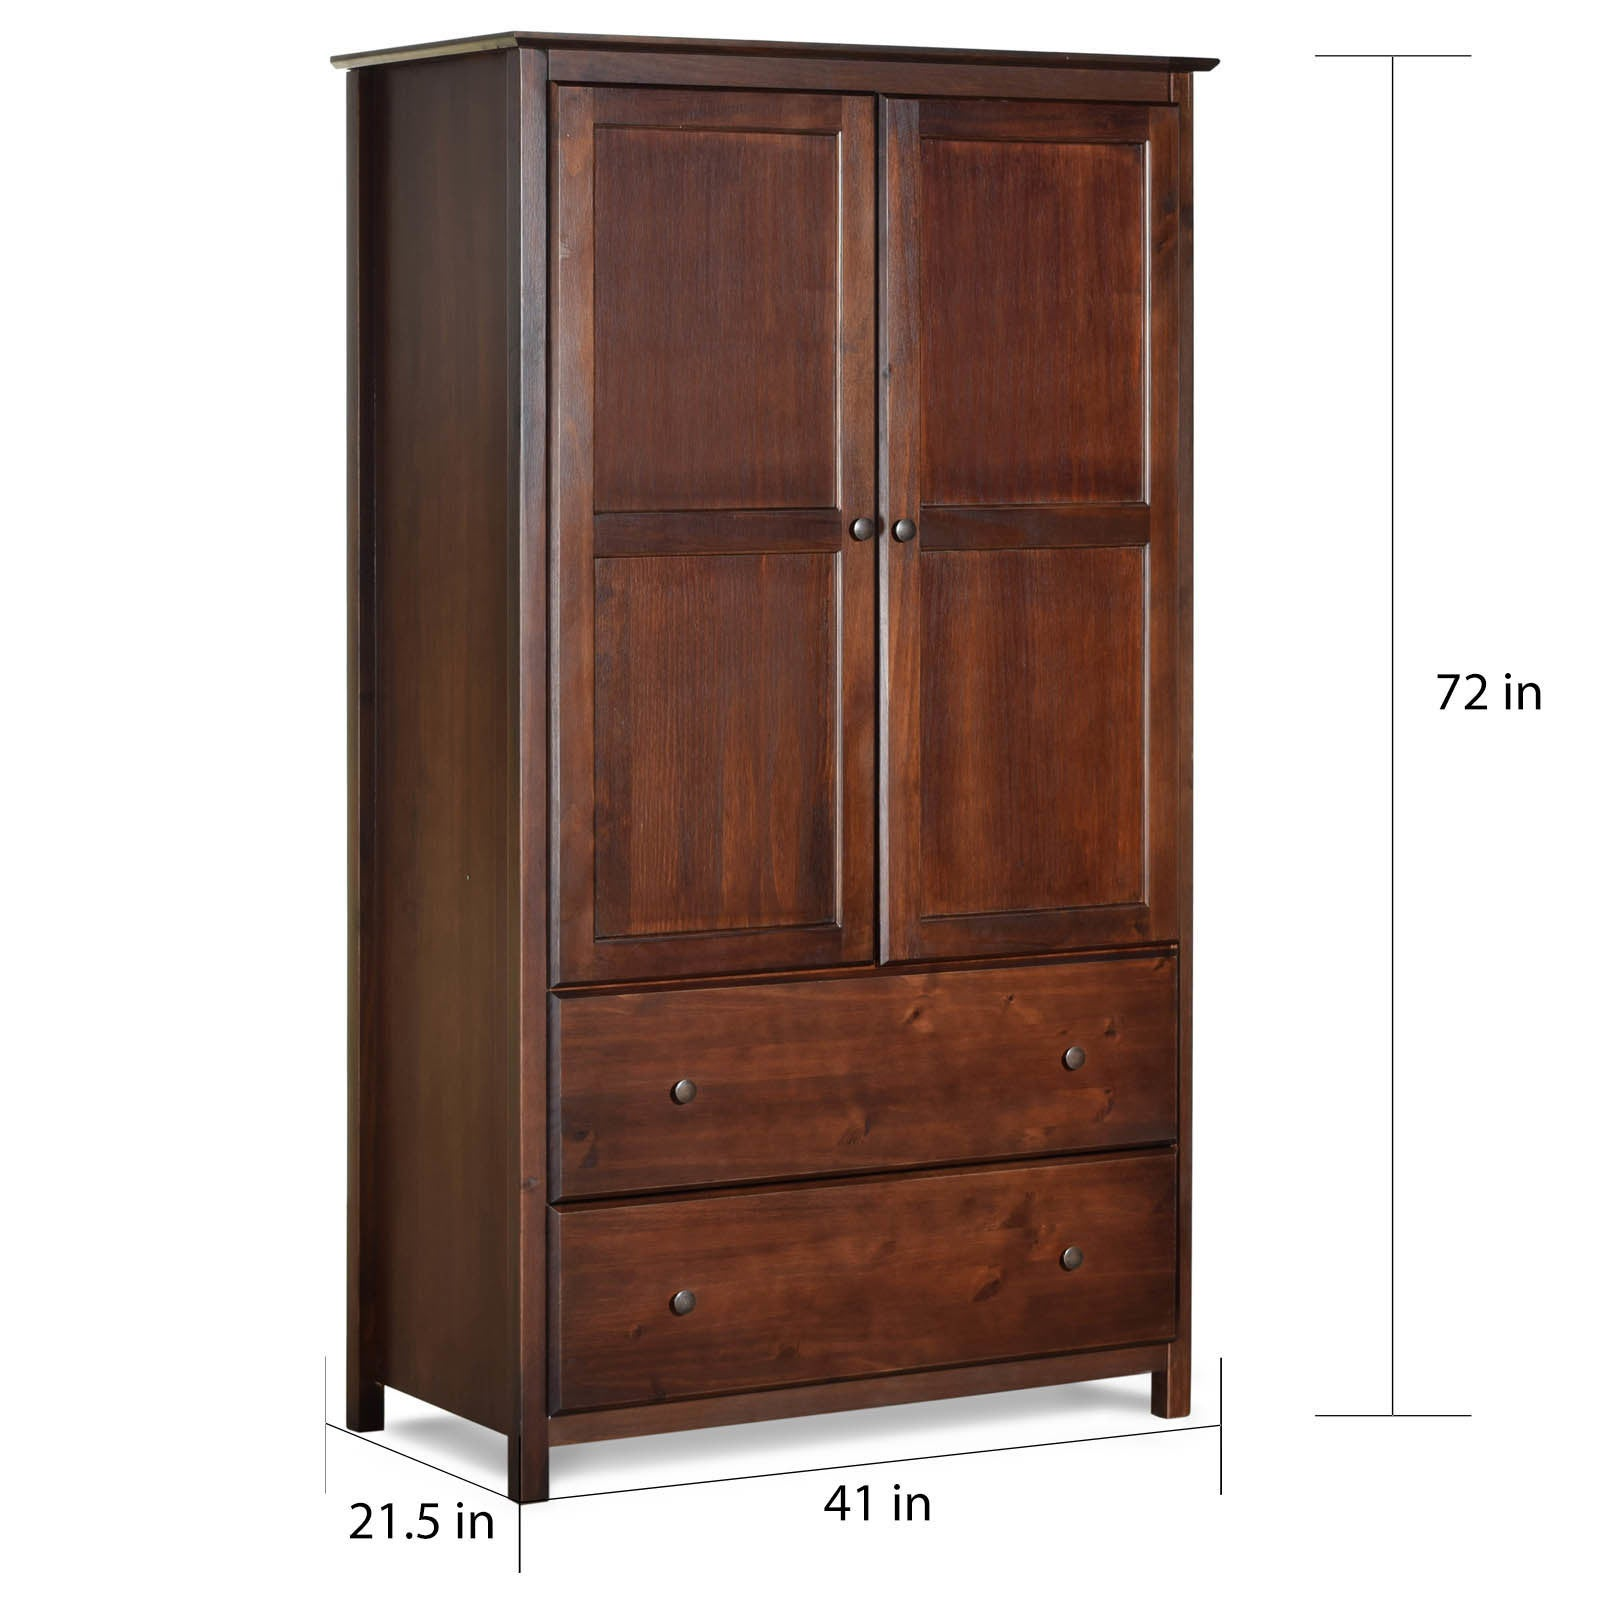 Exceptionnel Shop Grain Wood Furniture Shaker 2 Door Solid Wood Armoire Cherry Finish    41x72x22   Free Shipping Today   Overstock.com   10034535